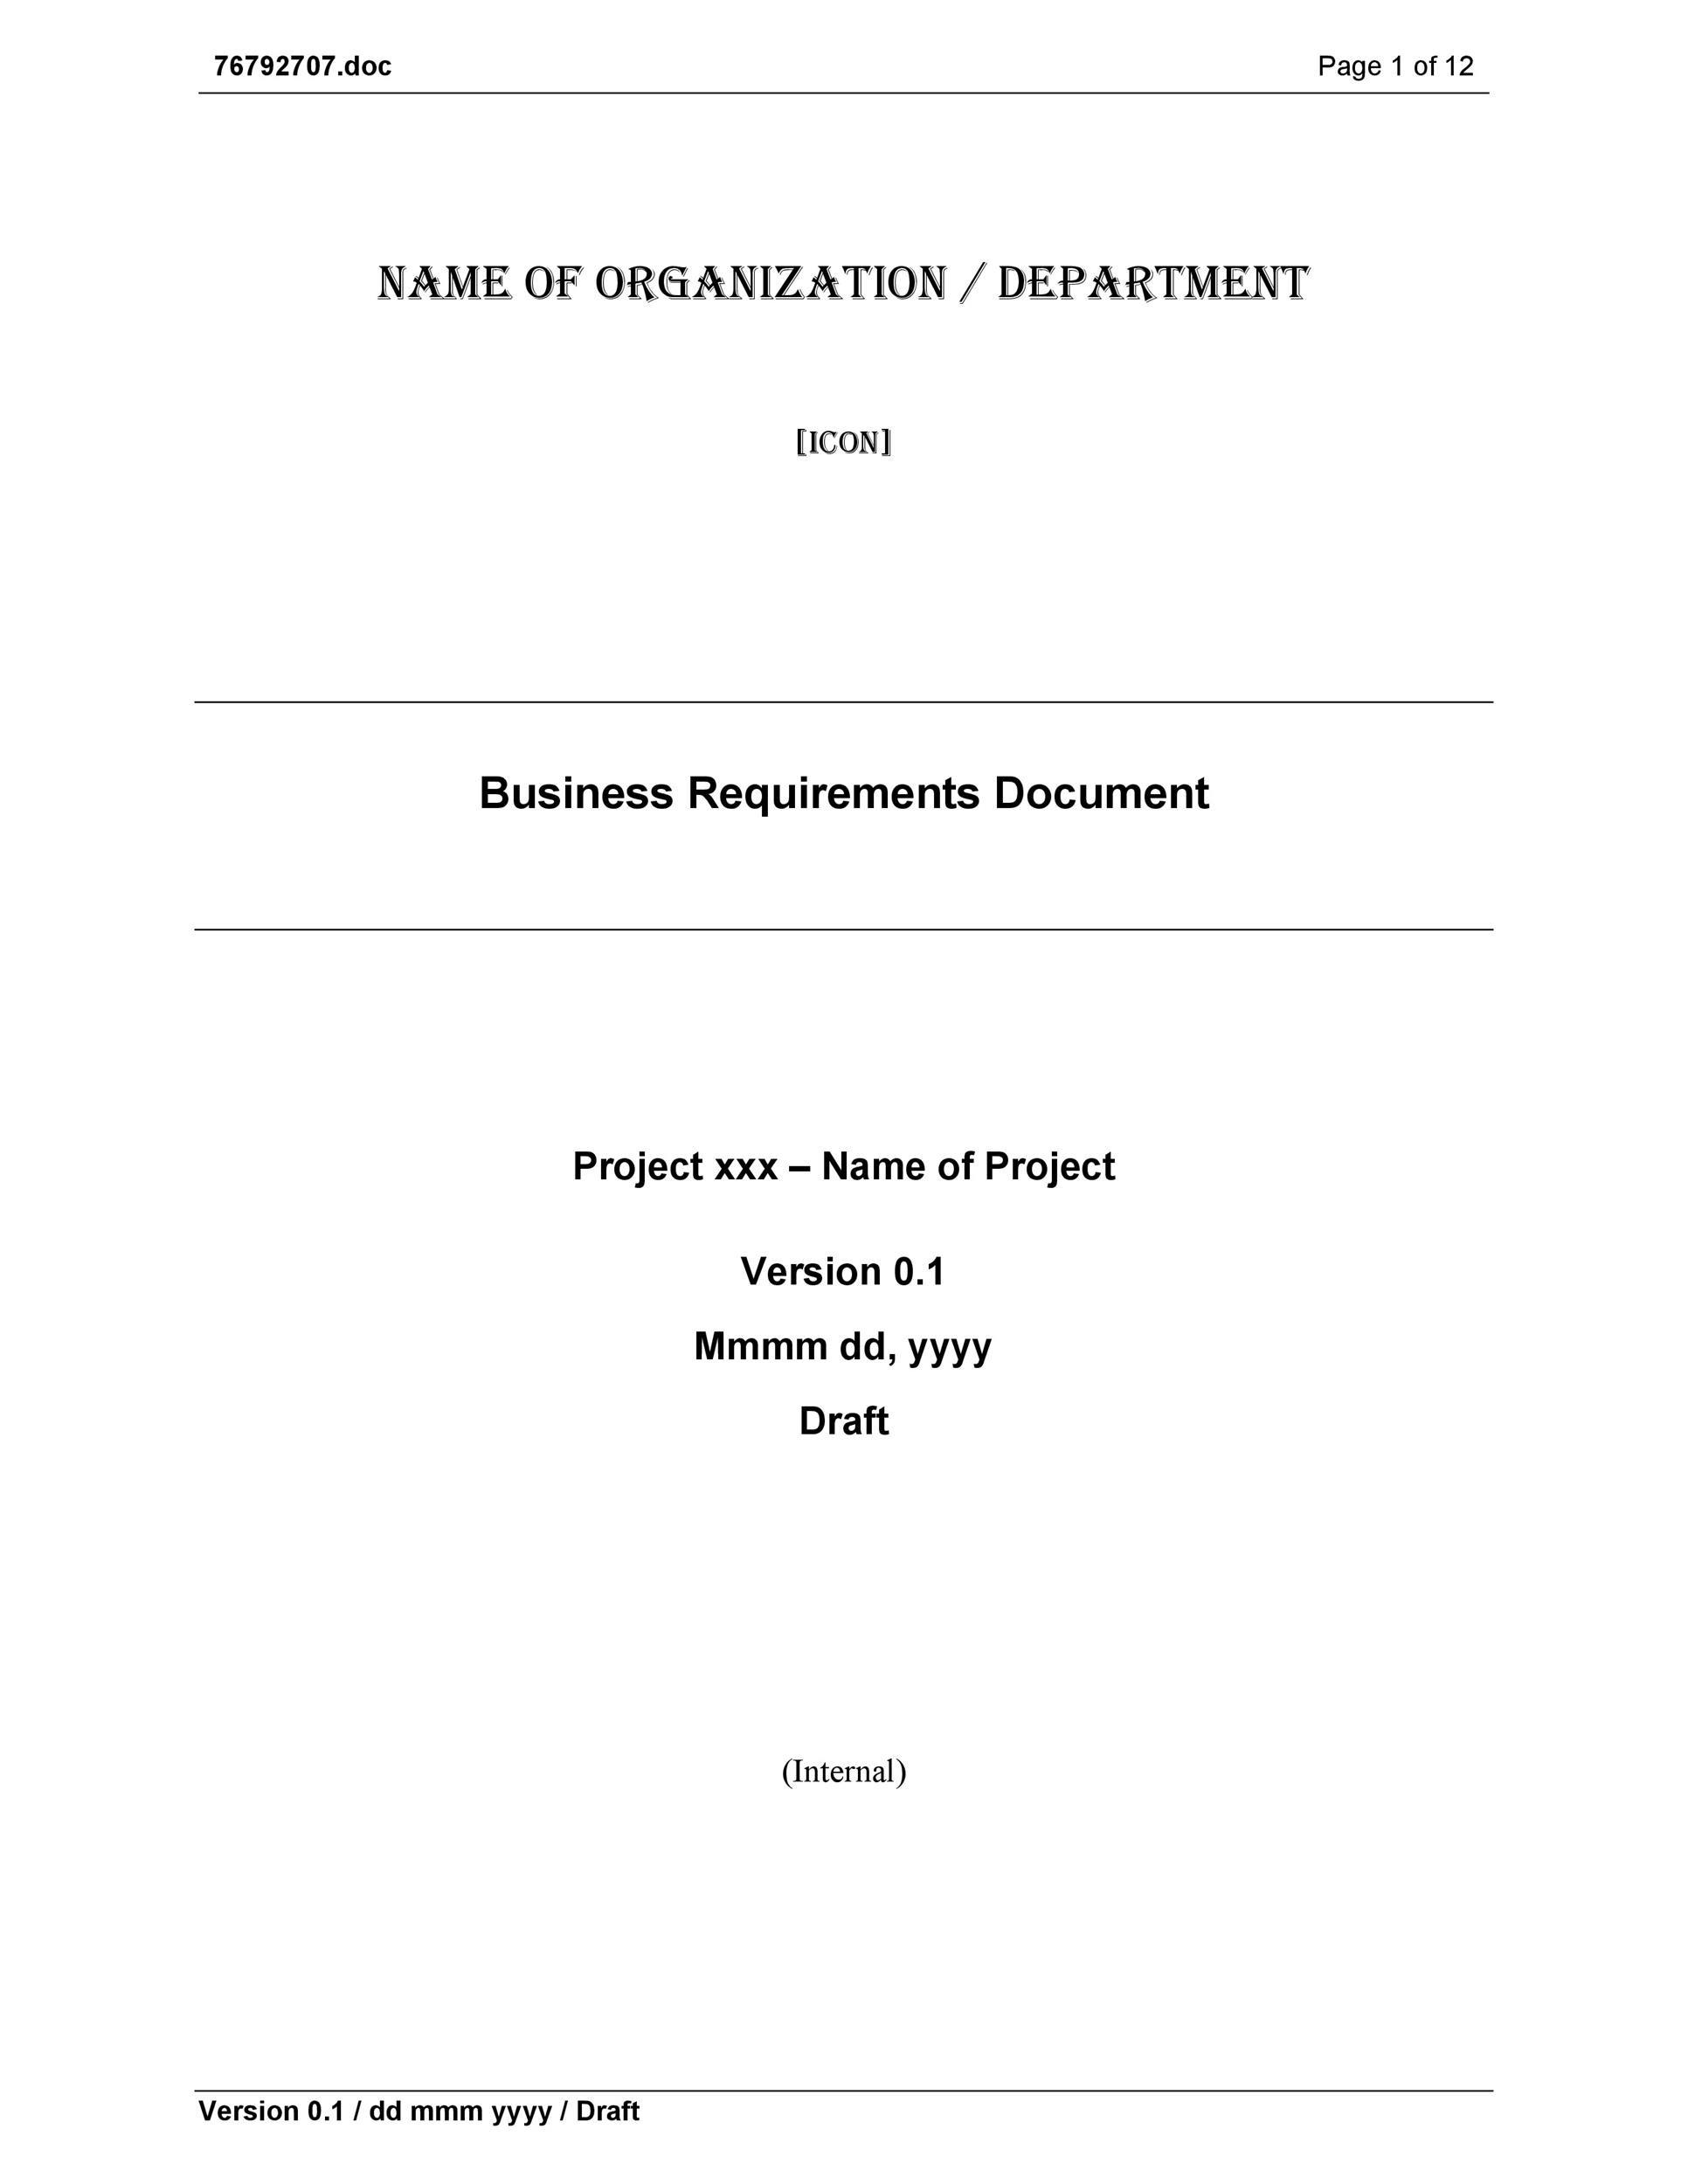 Printable Business Requirements Document Template 24